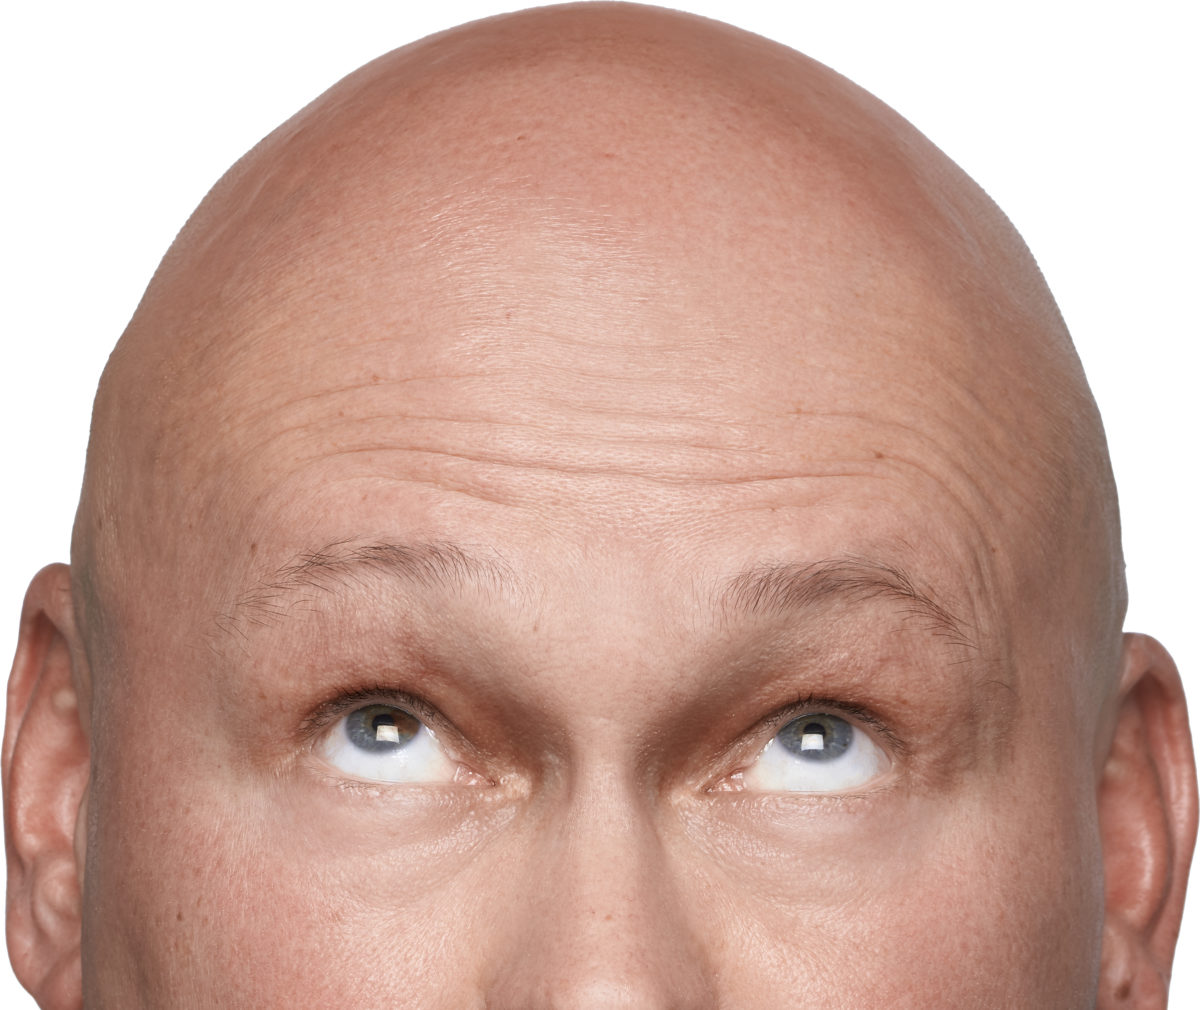 Bald Men Don't Use Hairspray. Do They?